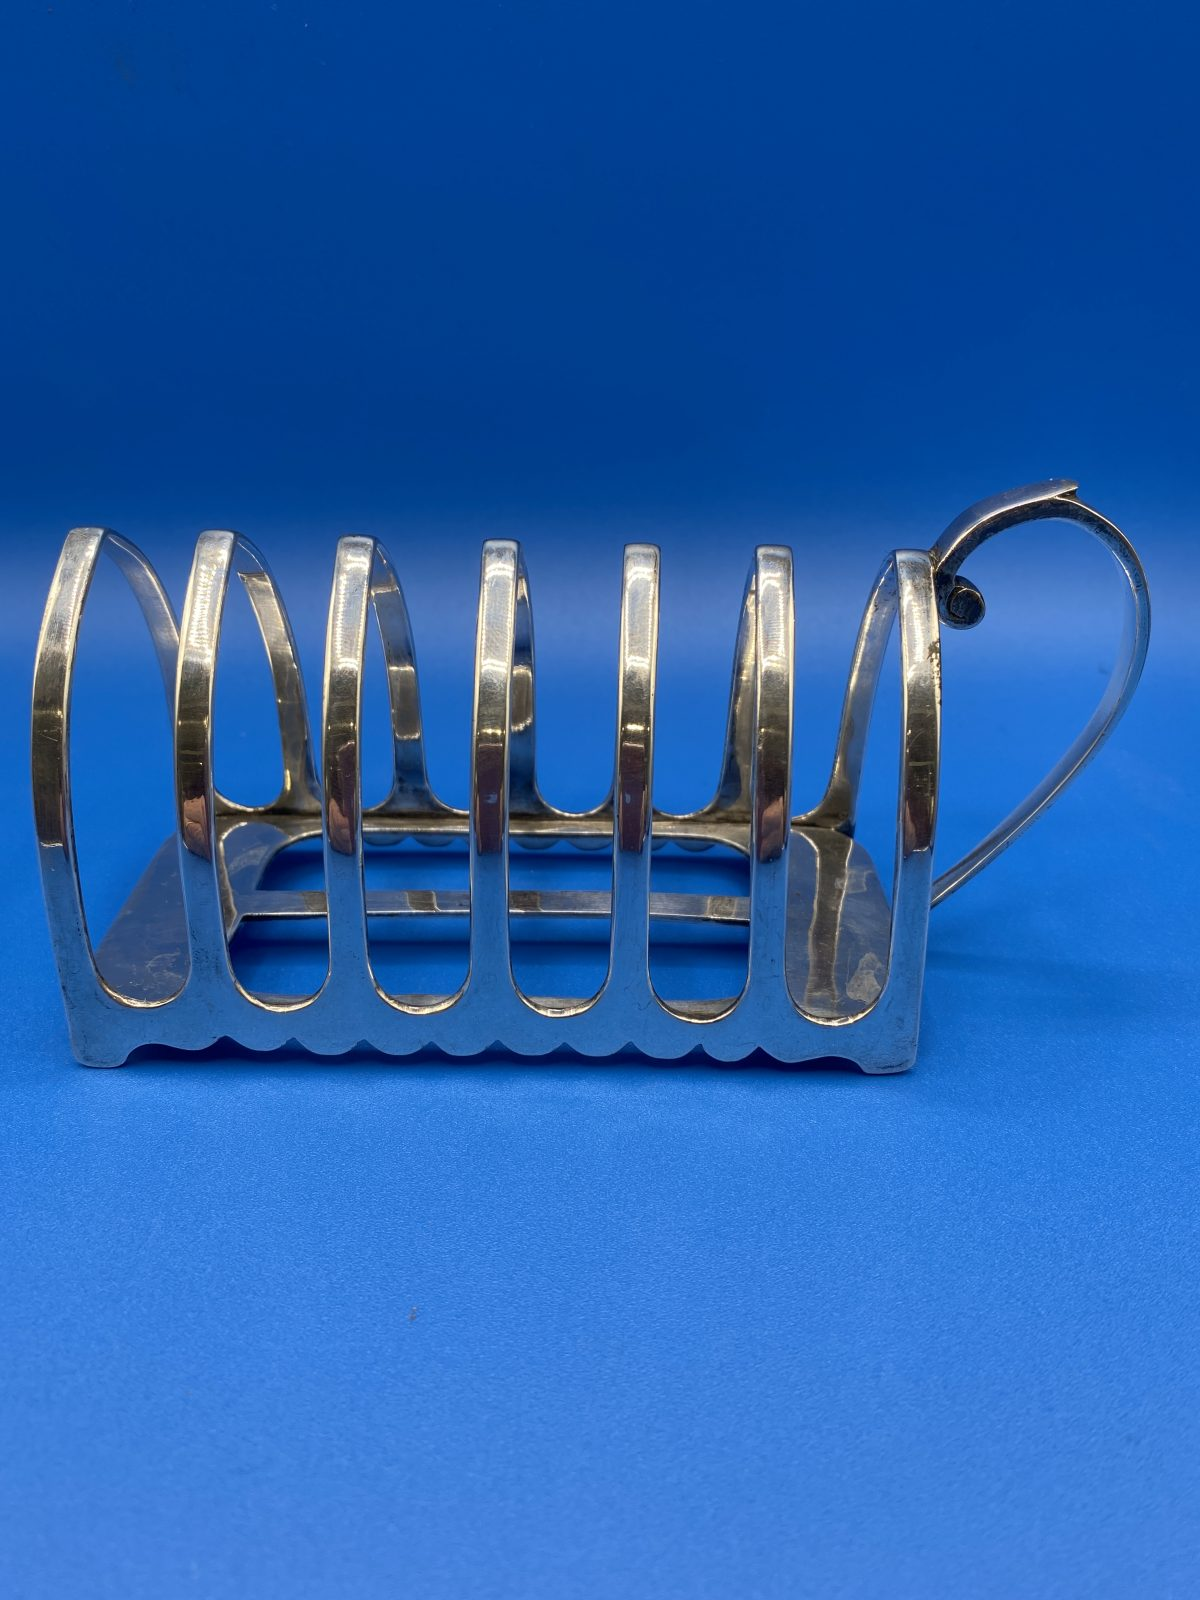 G3 - A Silver Plated 6 Slice Toast Rack with Handle by J.Dixon & Sons.  £44